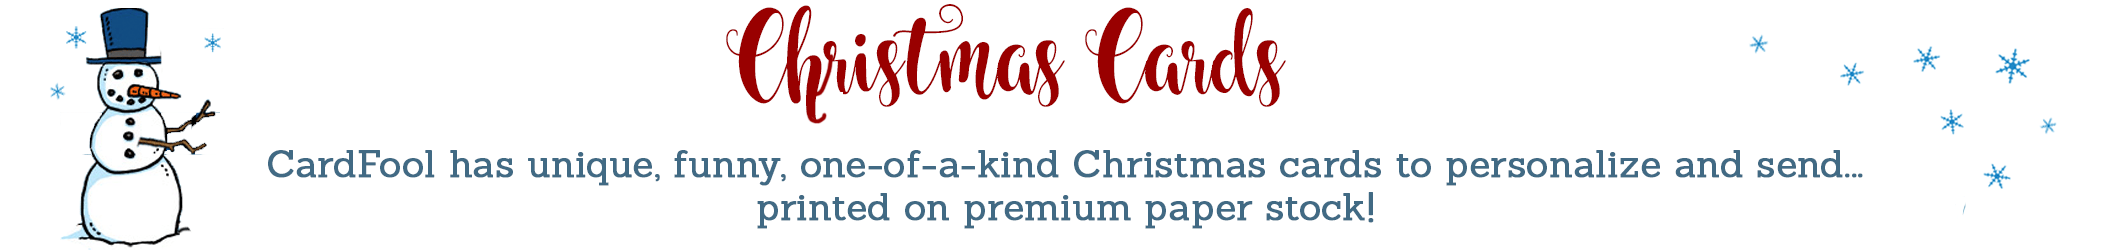 Christmas Cards - Funny, one-of-a-kind Christmas cards printed on premium paper stock.